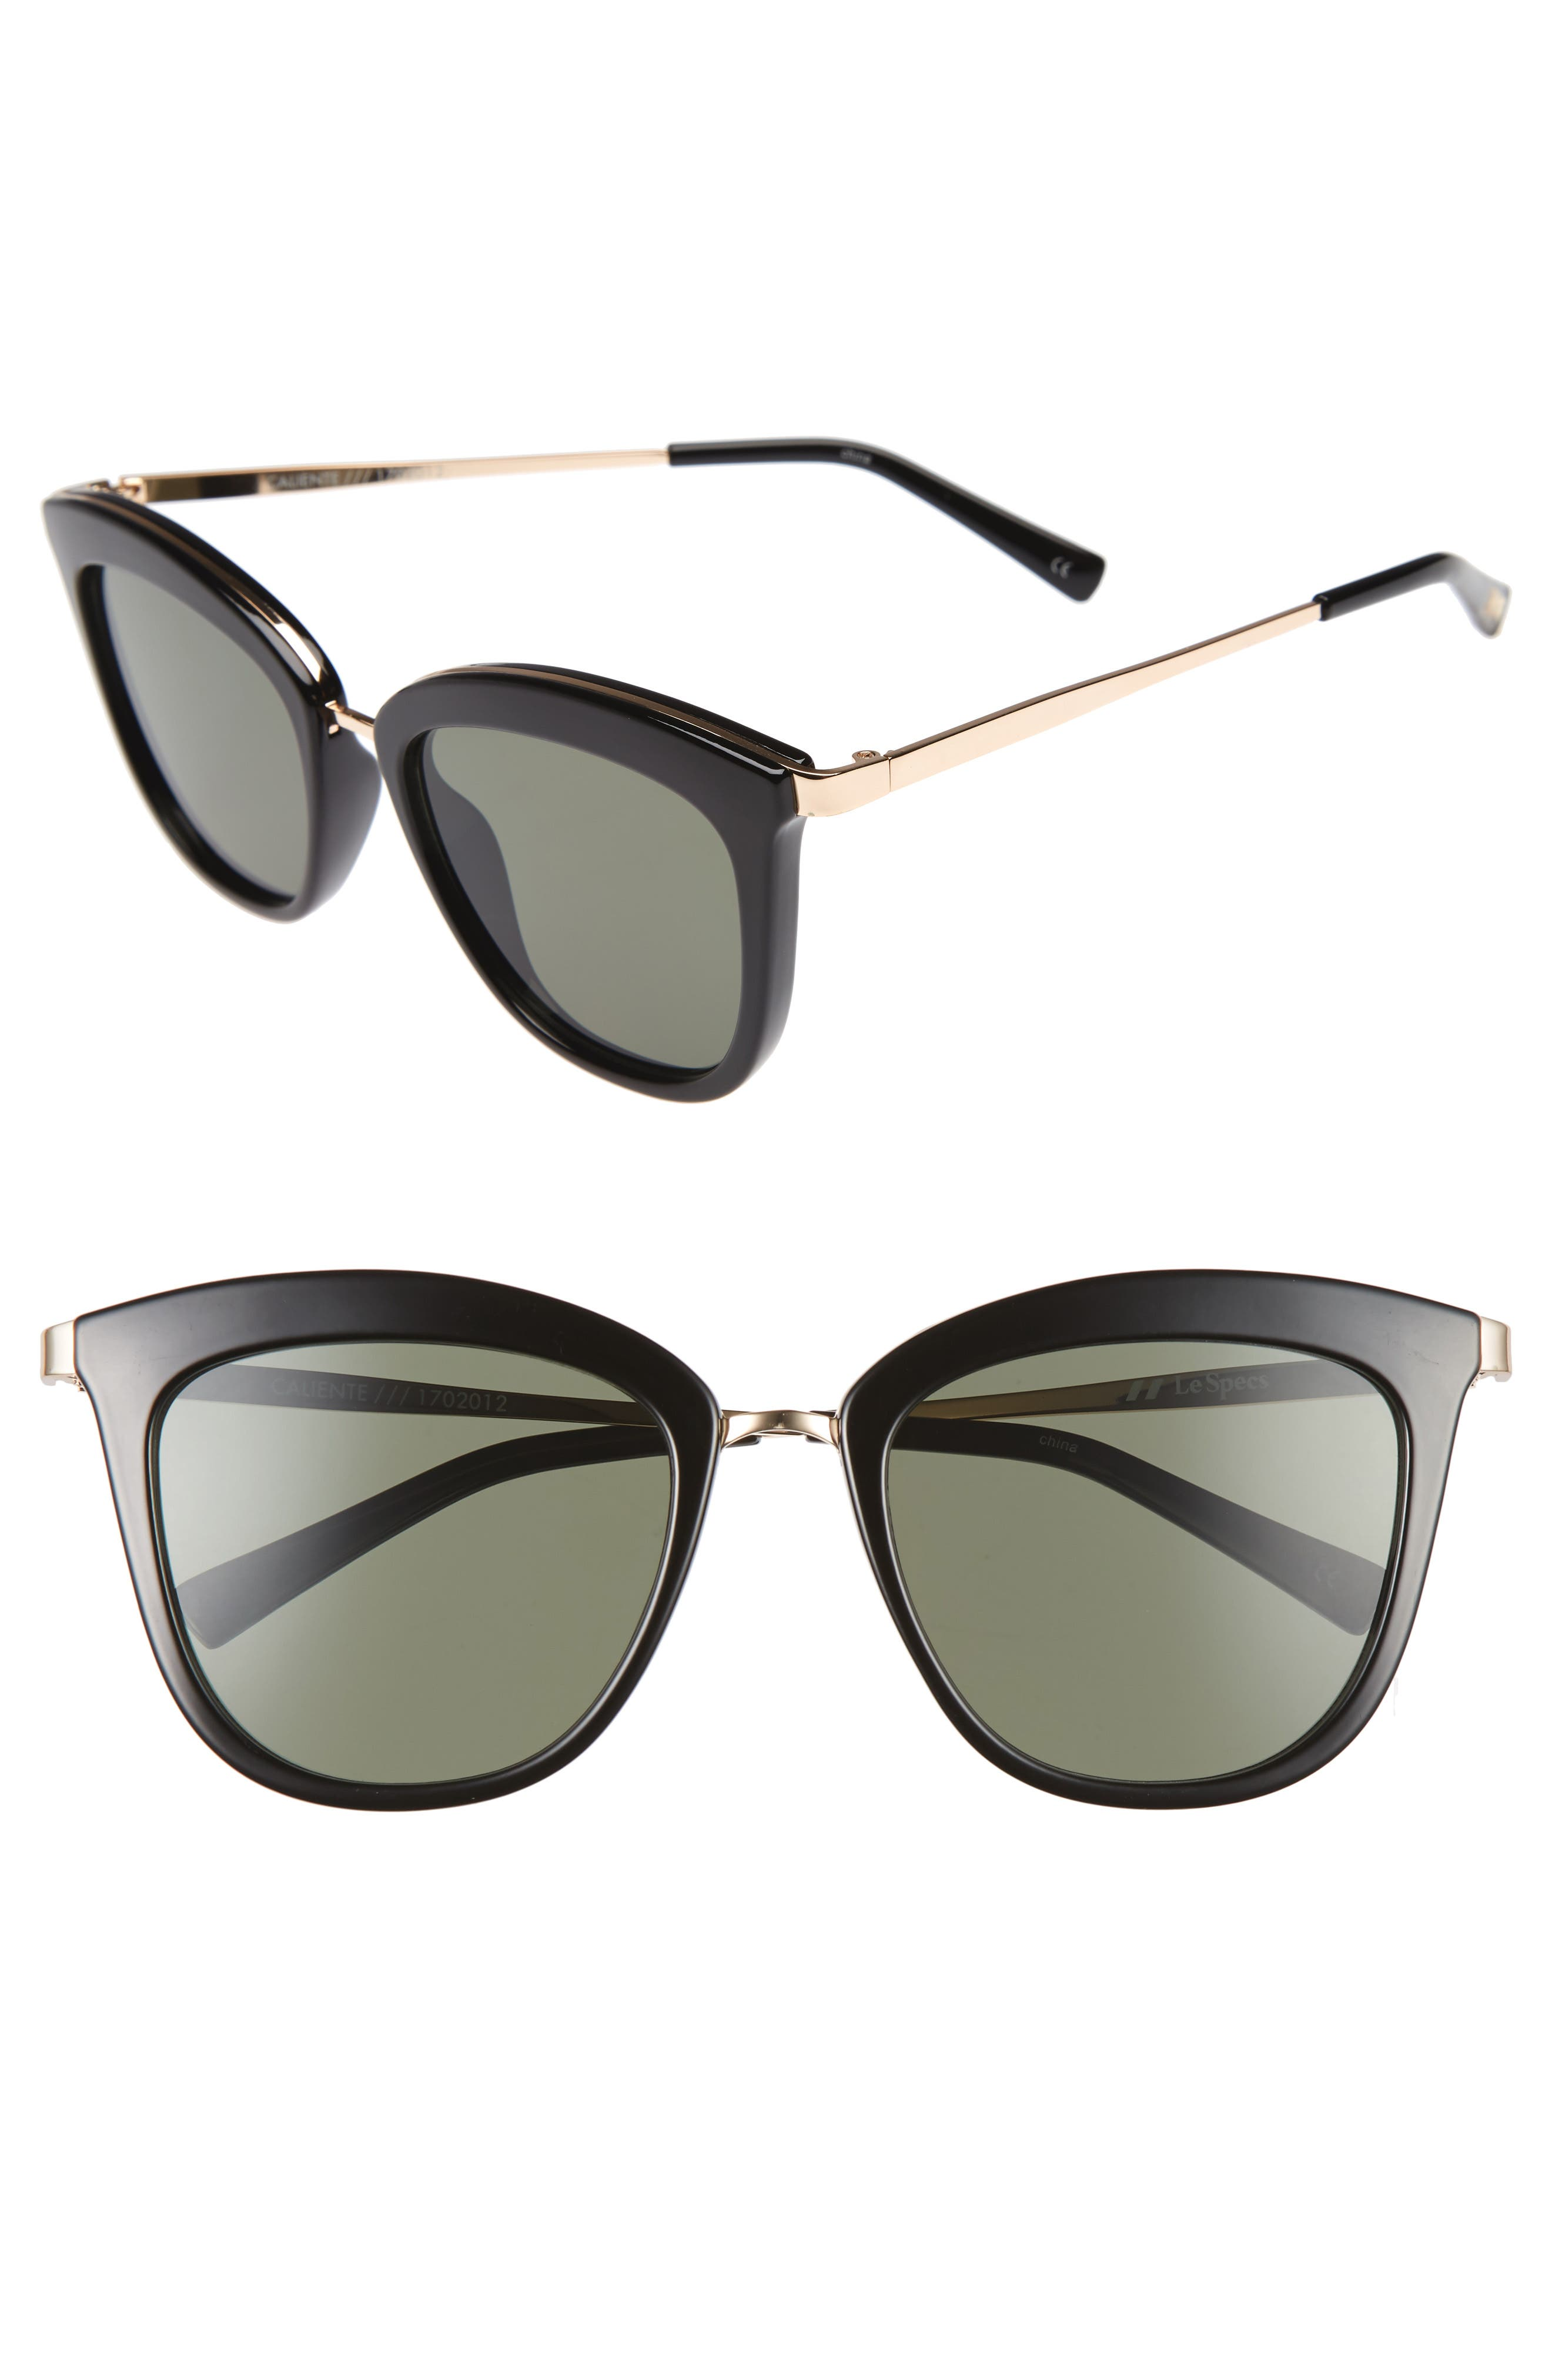 Alternate Image 1 Selected - Le Specs Caliente 53mm Cat Eye Sunglasses